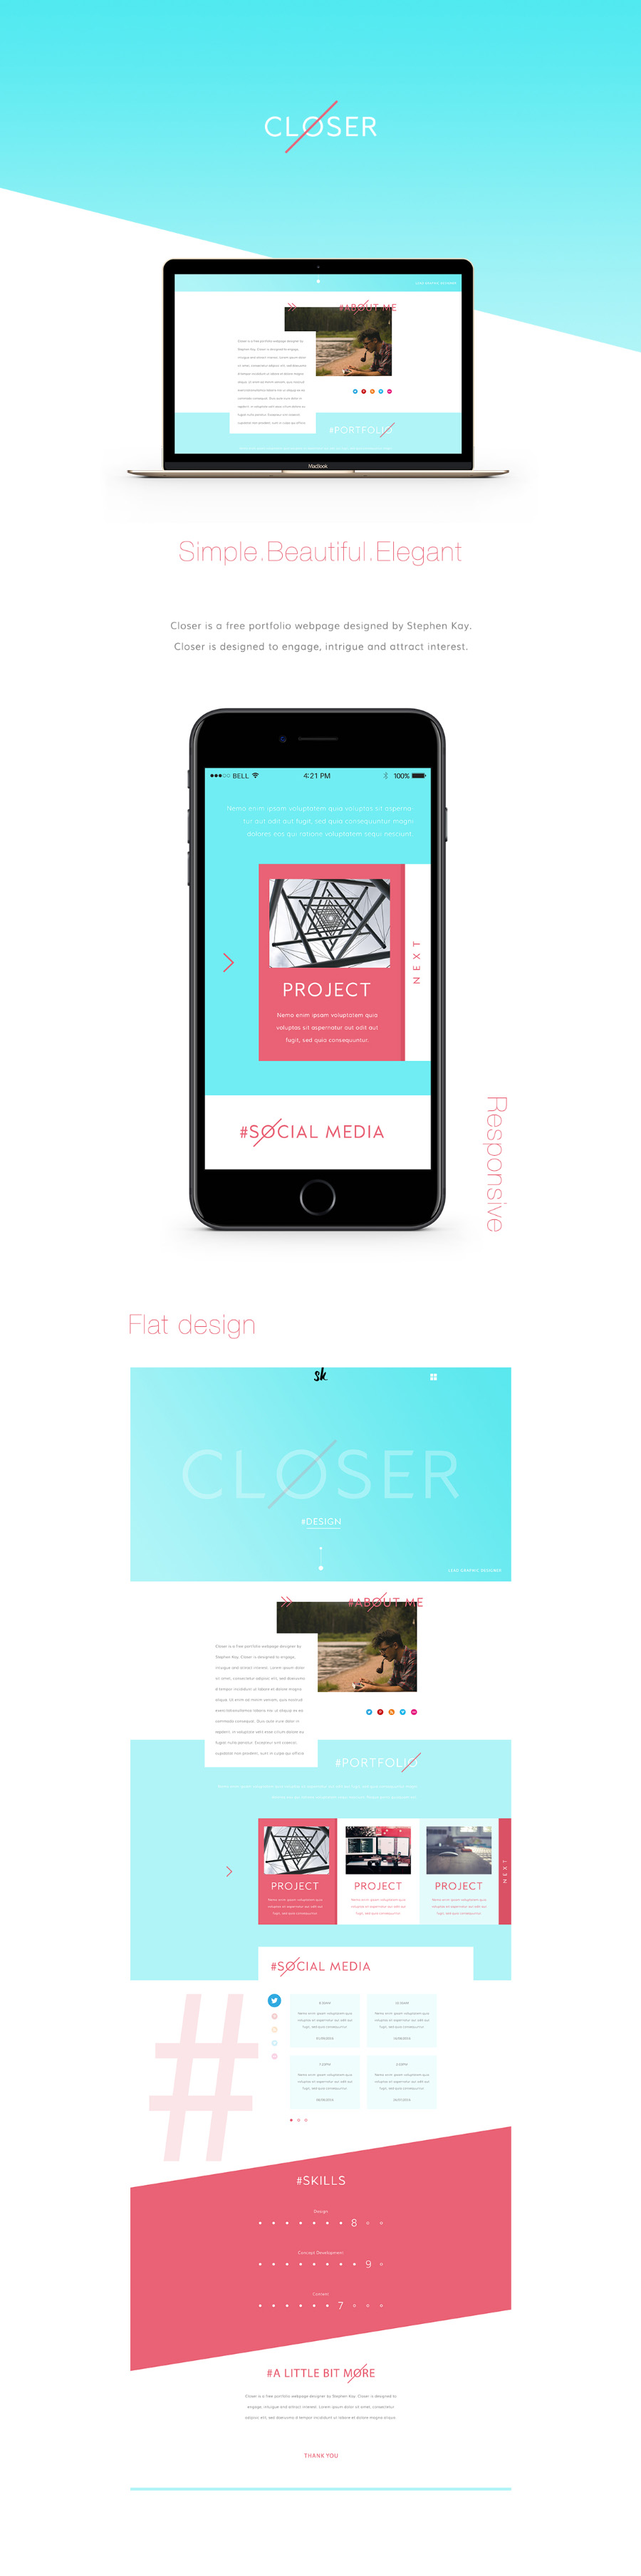 Closer Free PSD Template